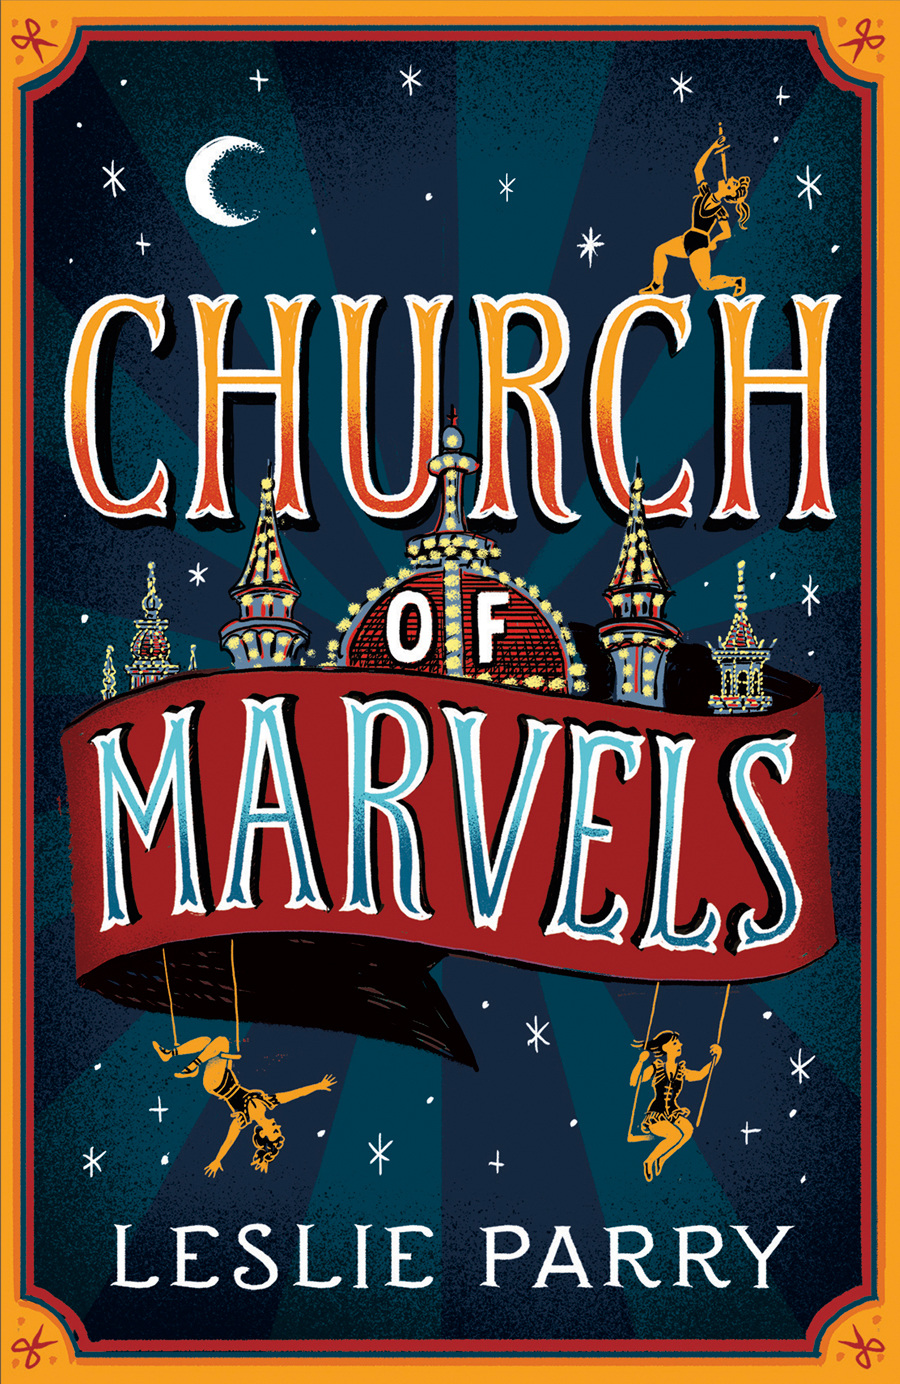 http://www.tworoadsbooks.com/fiction/church-of-marvels-leslie-parry/